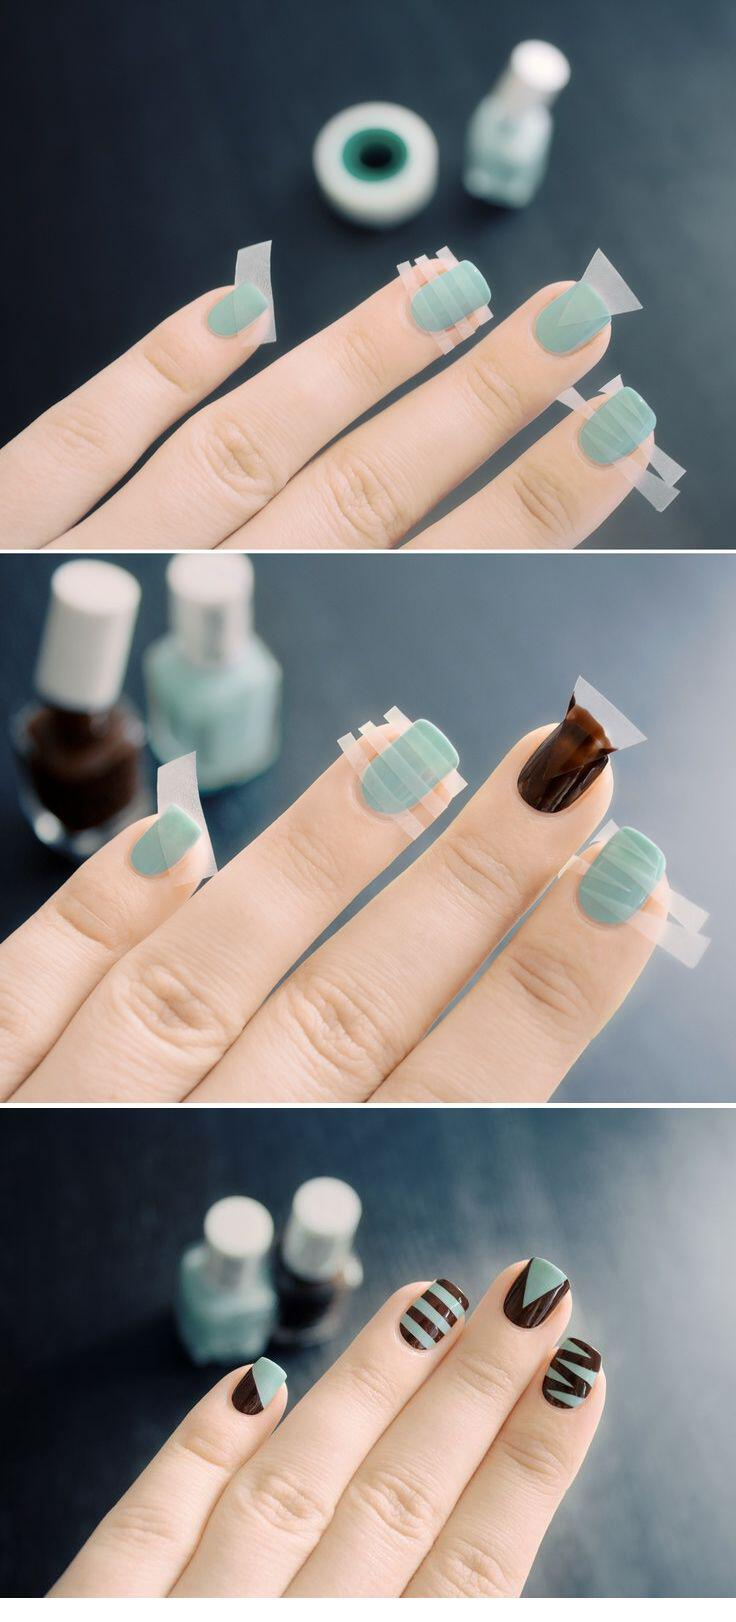 7 cute nail designs tutorials fall7 - 7 cute nail designs tutorials for fall